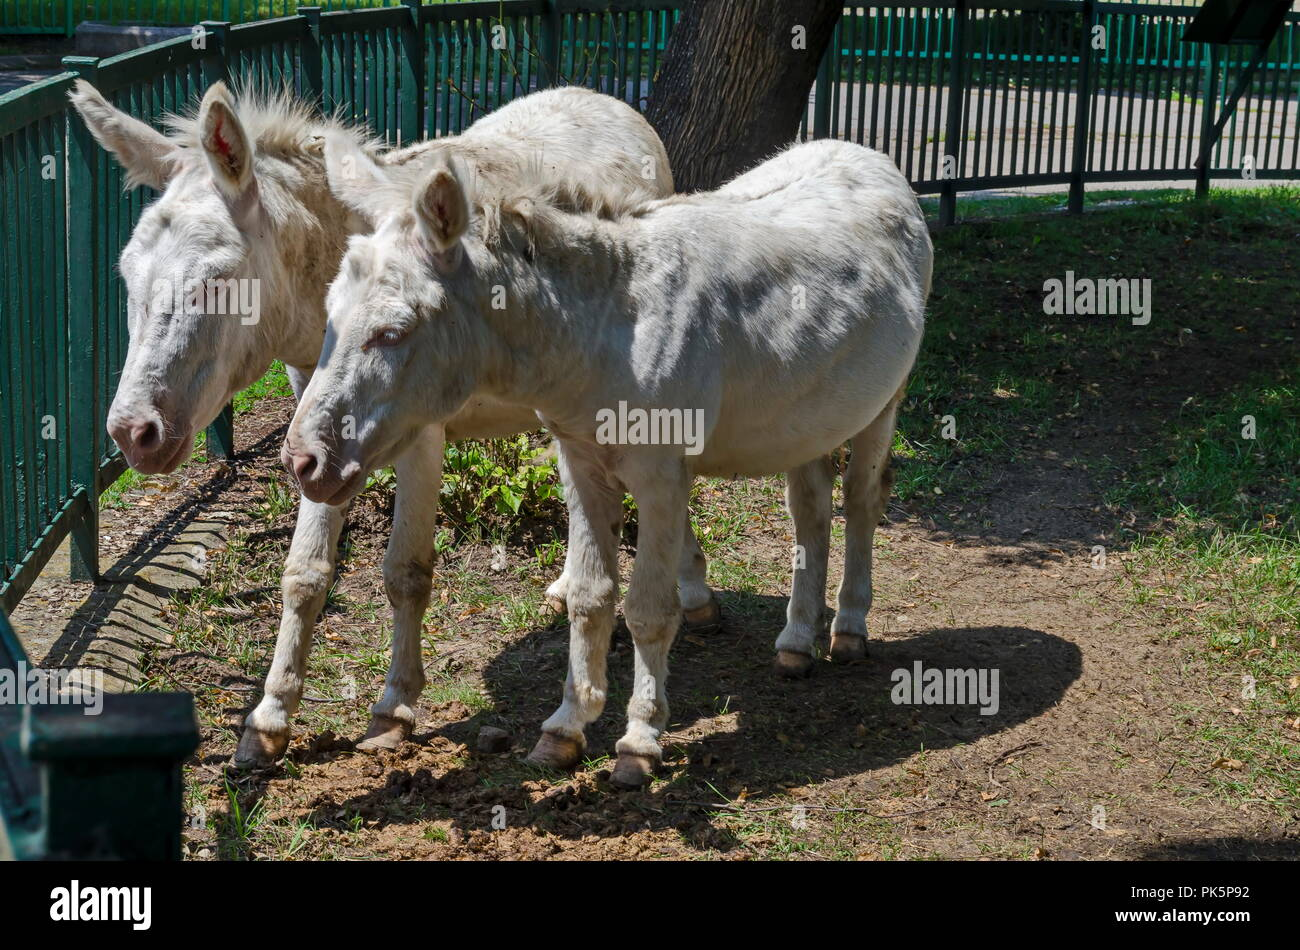 Two white donkeys walk outdoor in the summer park, Sofia, Bulgaria Stock Photo